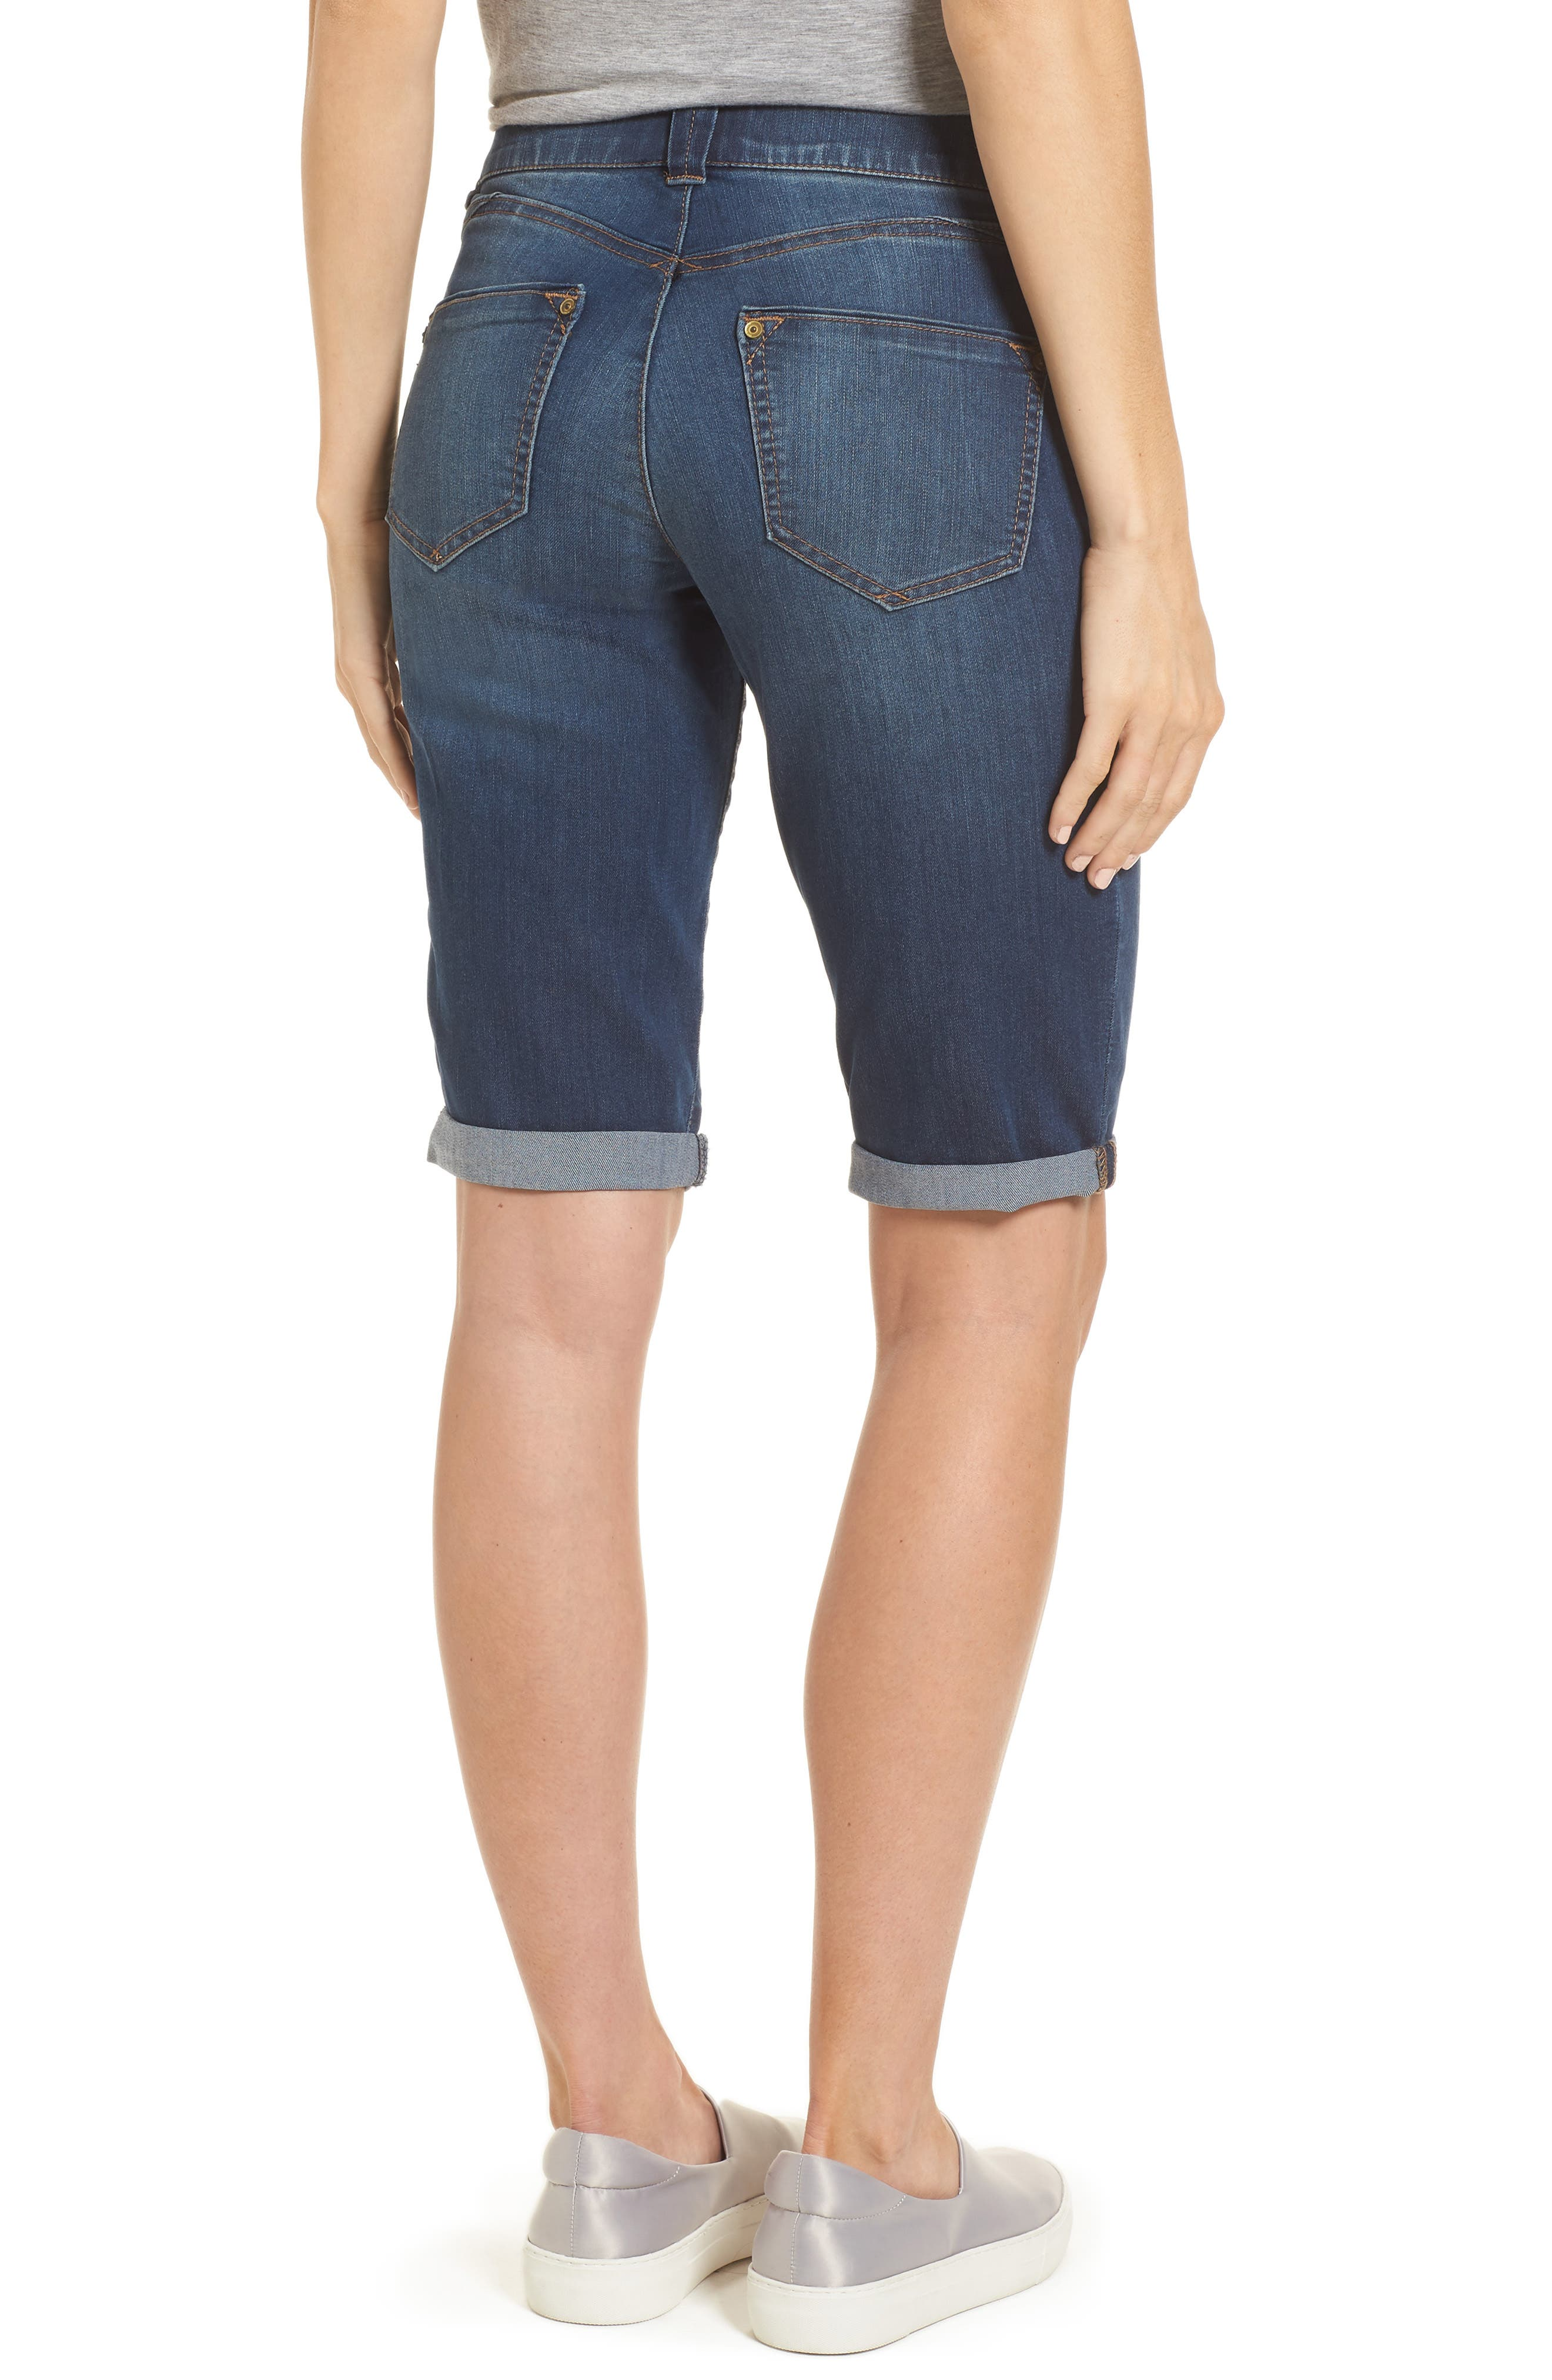 Ab-solution Cuffed Denim Shorts,                             Alternate thumbnail 2, color,                             BLUE